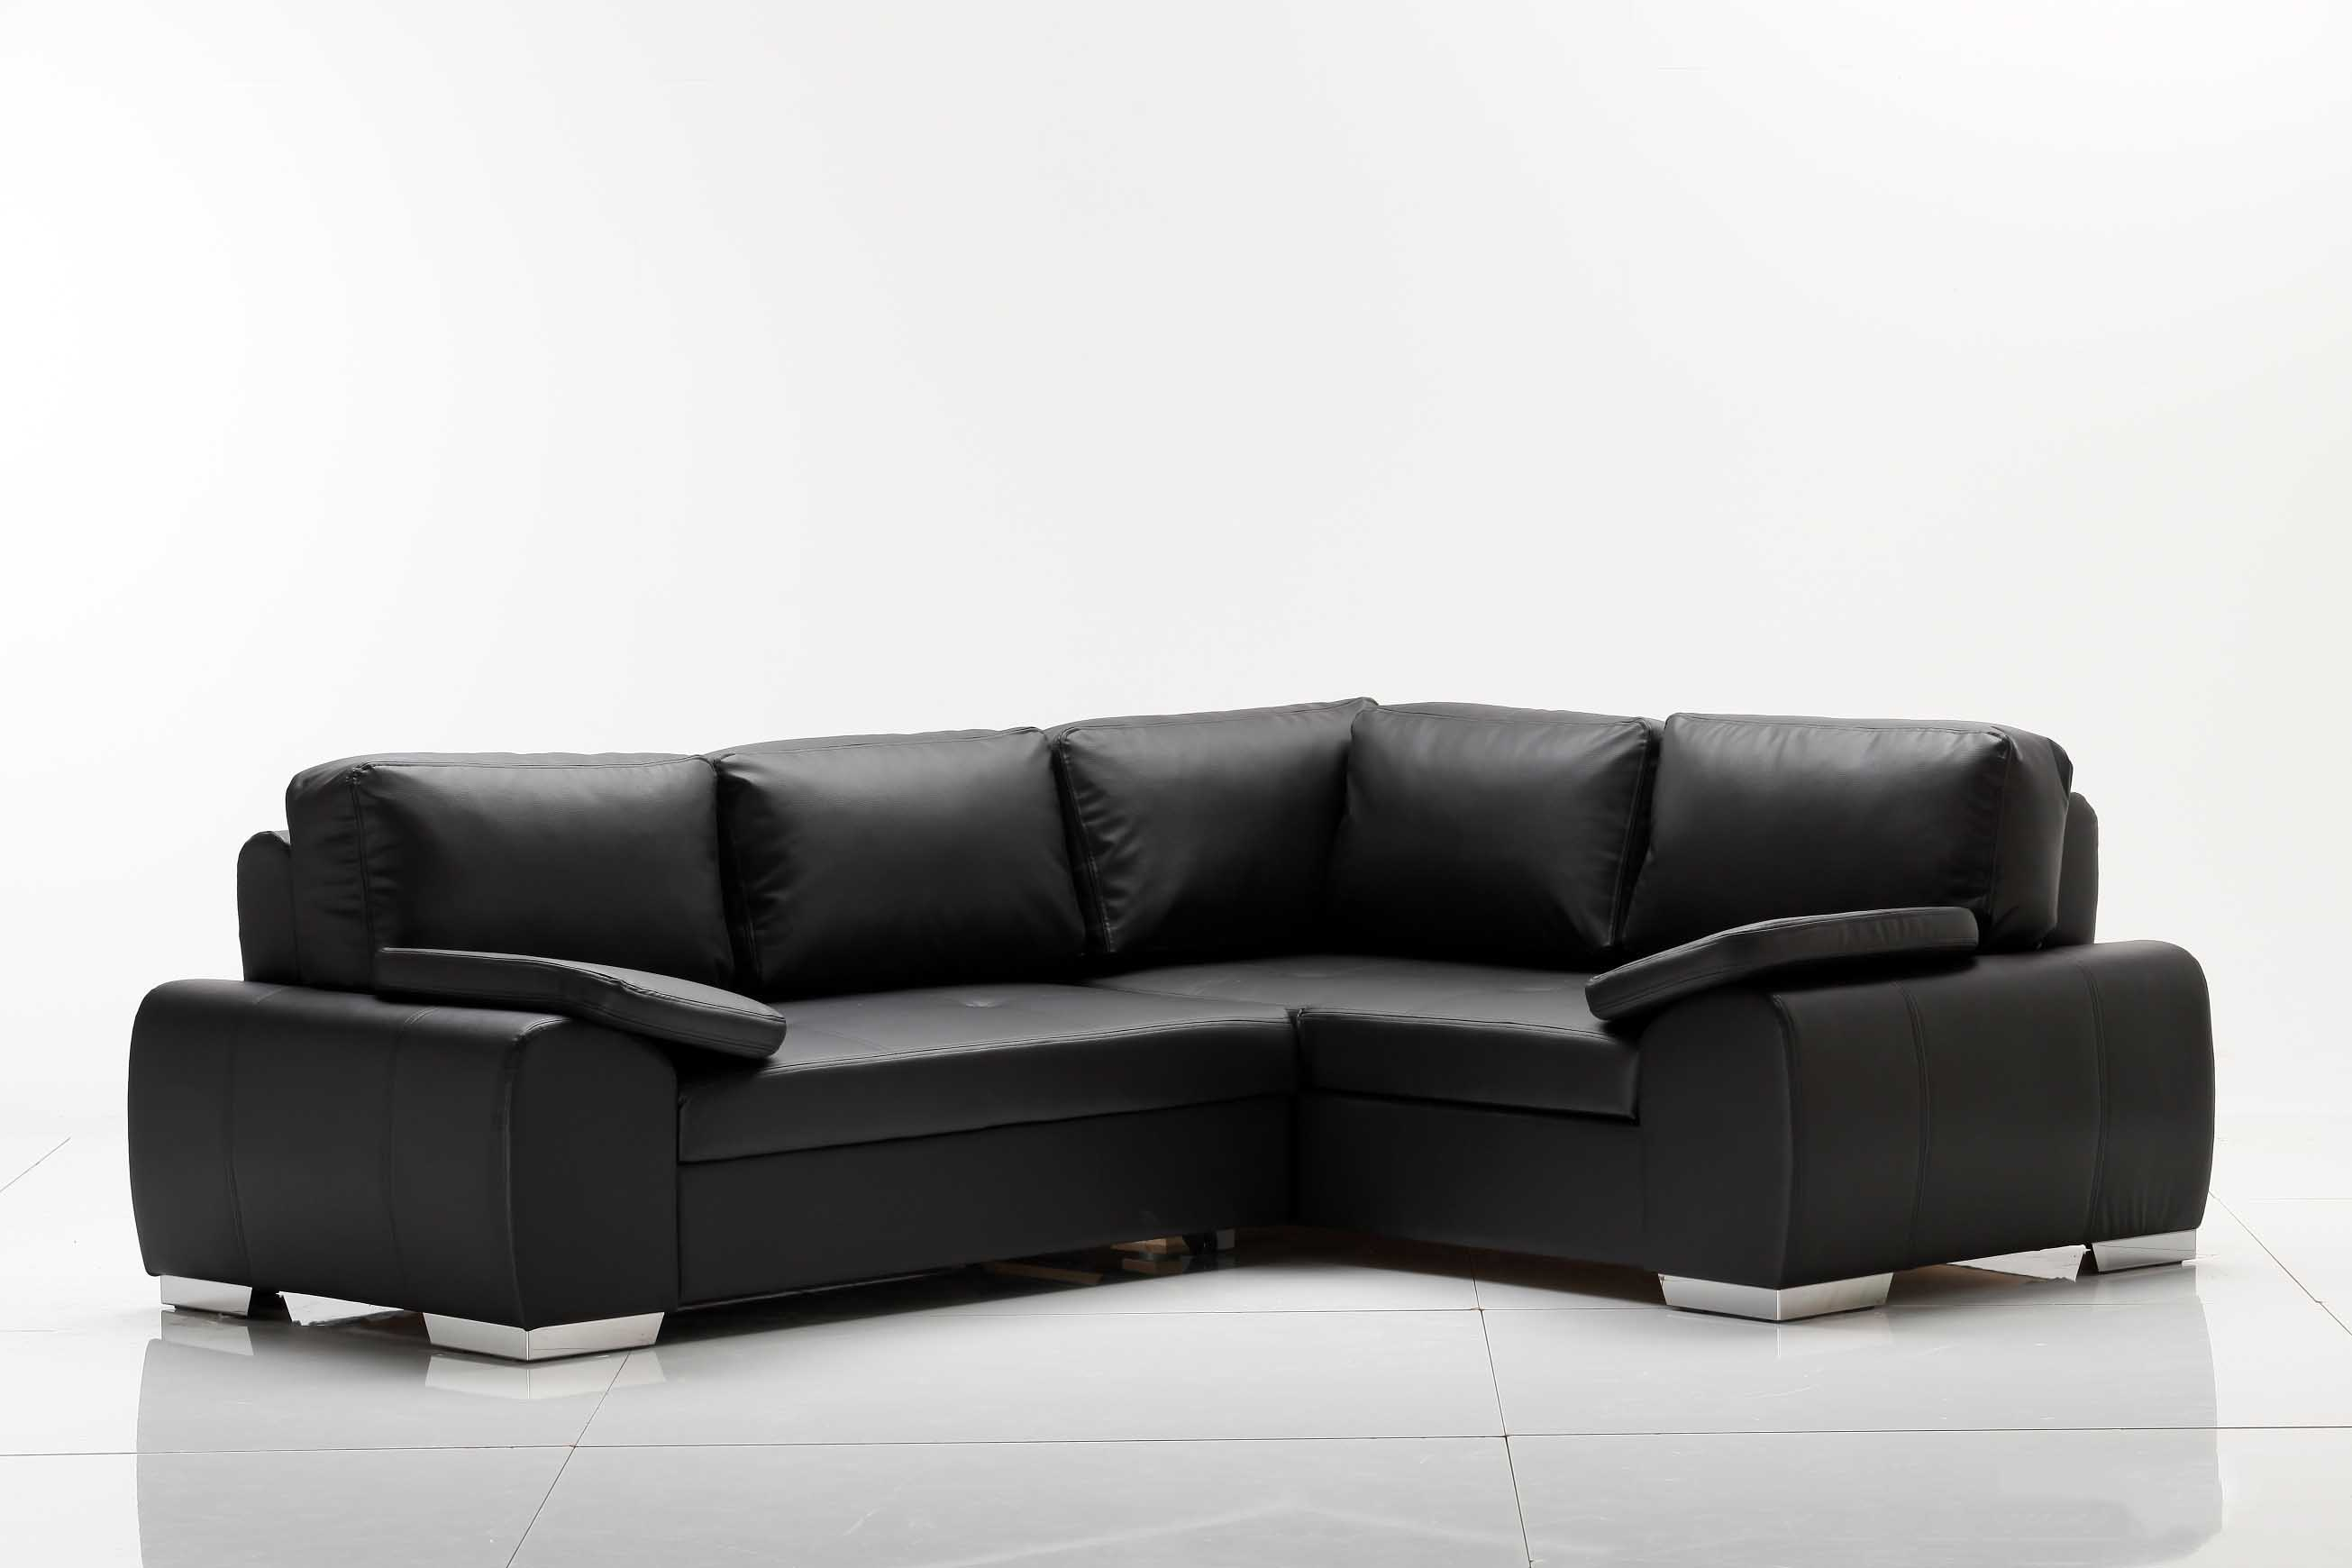 ecksofa weiss kunstleder g nstig kaufen. Black Bedroom Furniture Sets. Home Design Ideas